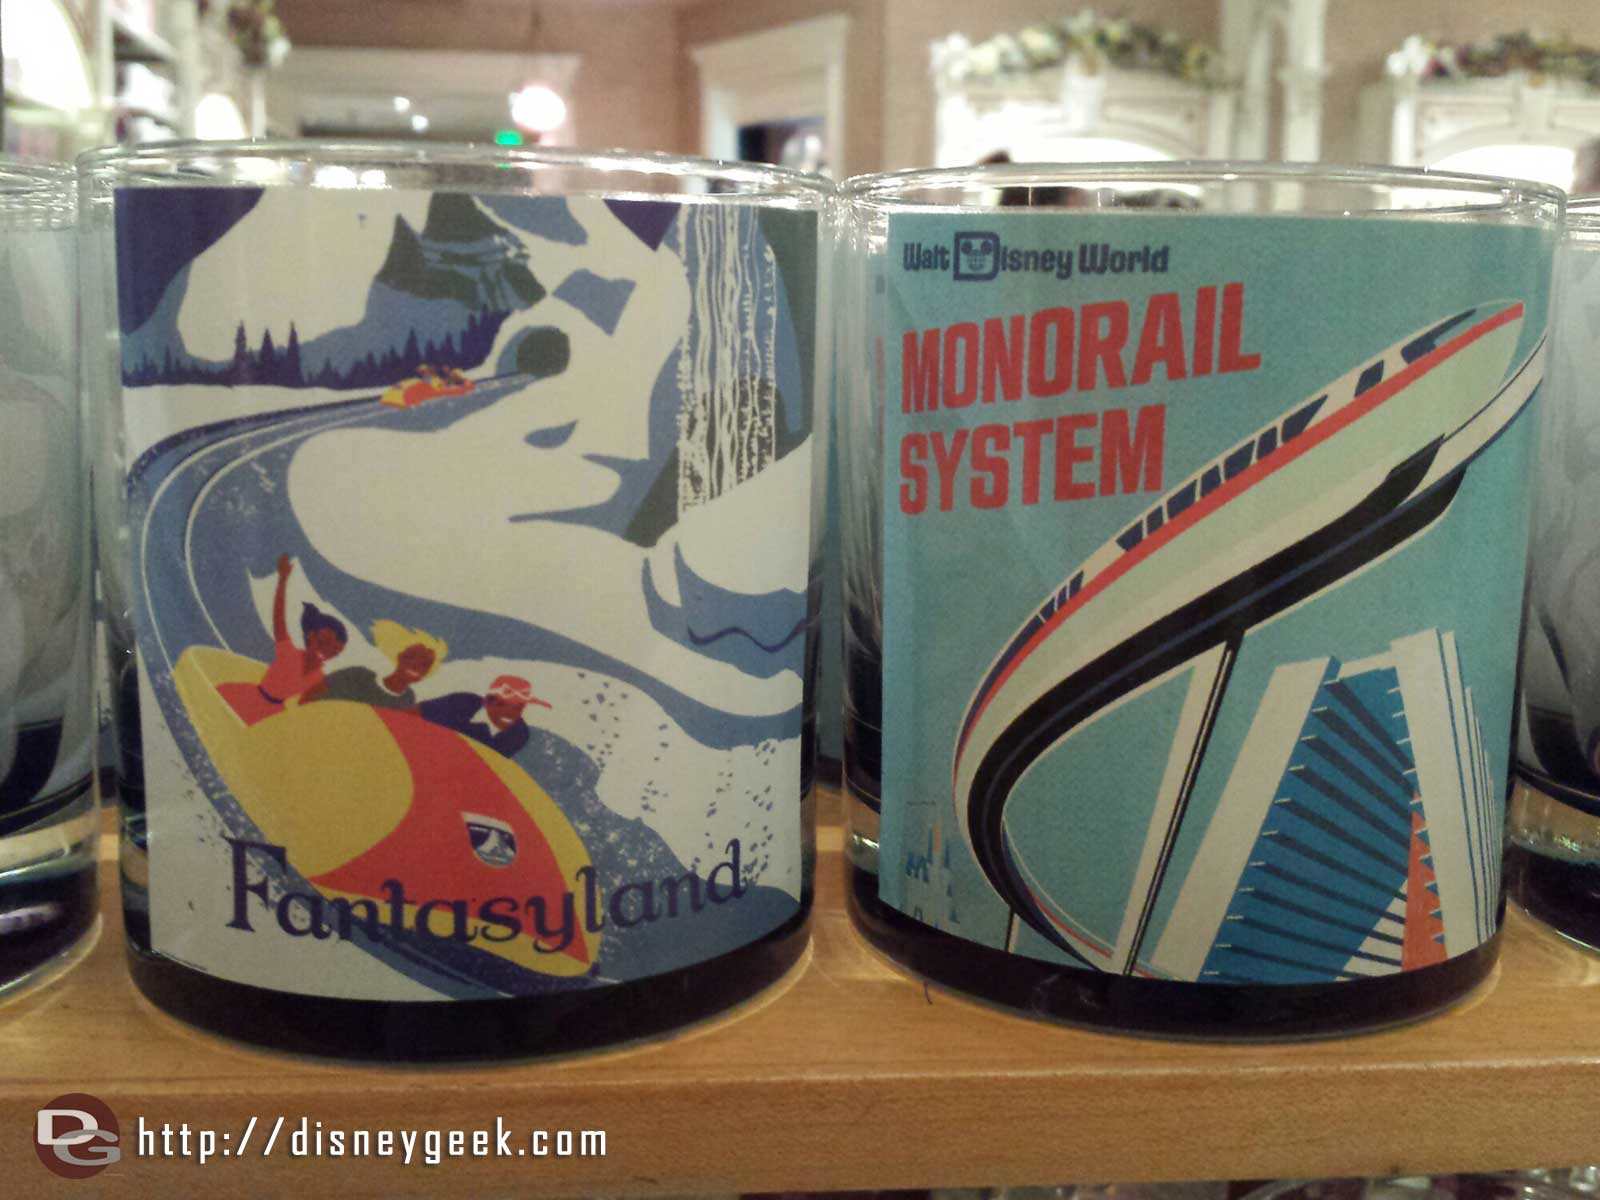 An odd choice, Disneyland Fantasyland and WDW Monorail on the same glass